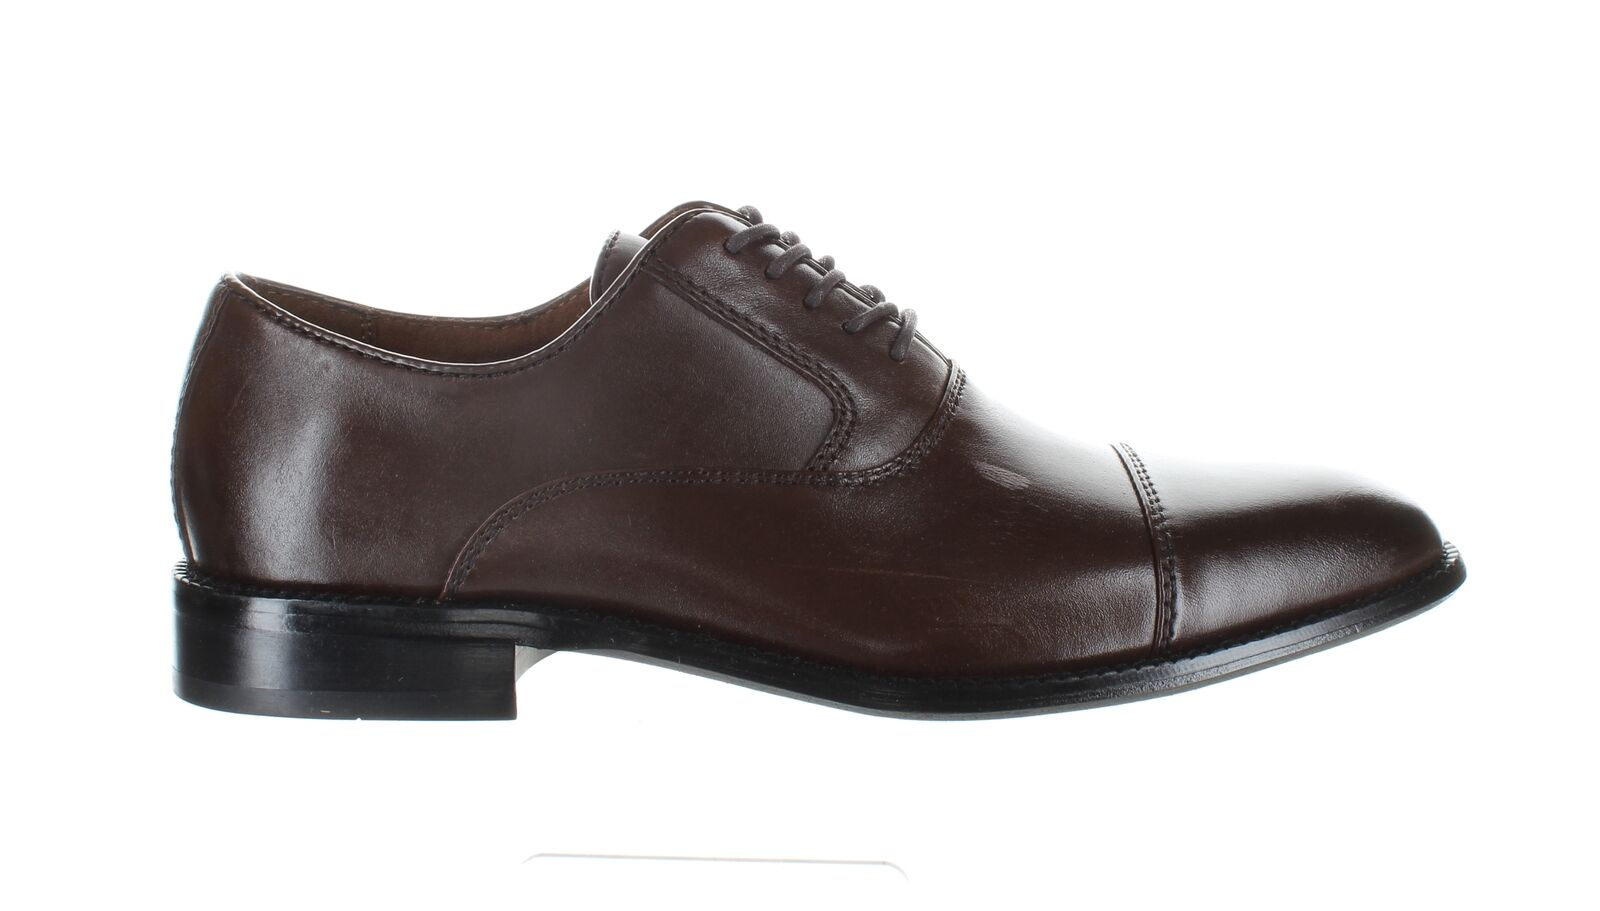 Kenneth Cole Mens Dice Lace Up Brown Oxford Dress Shoe Size 8 (1805053)